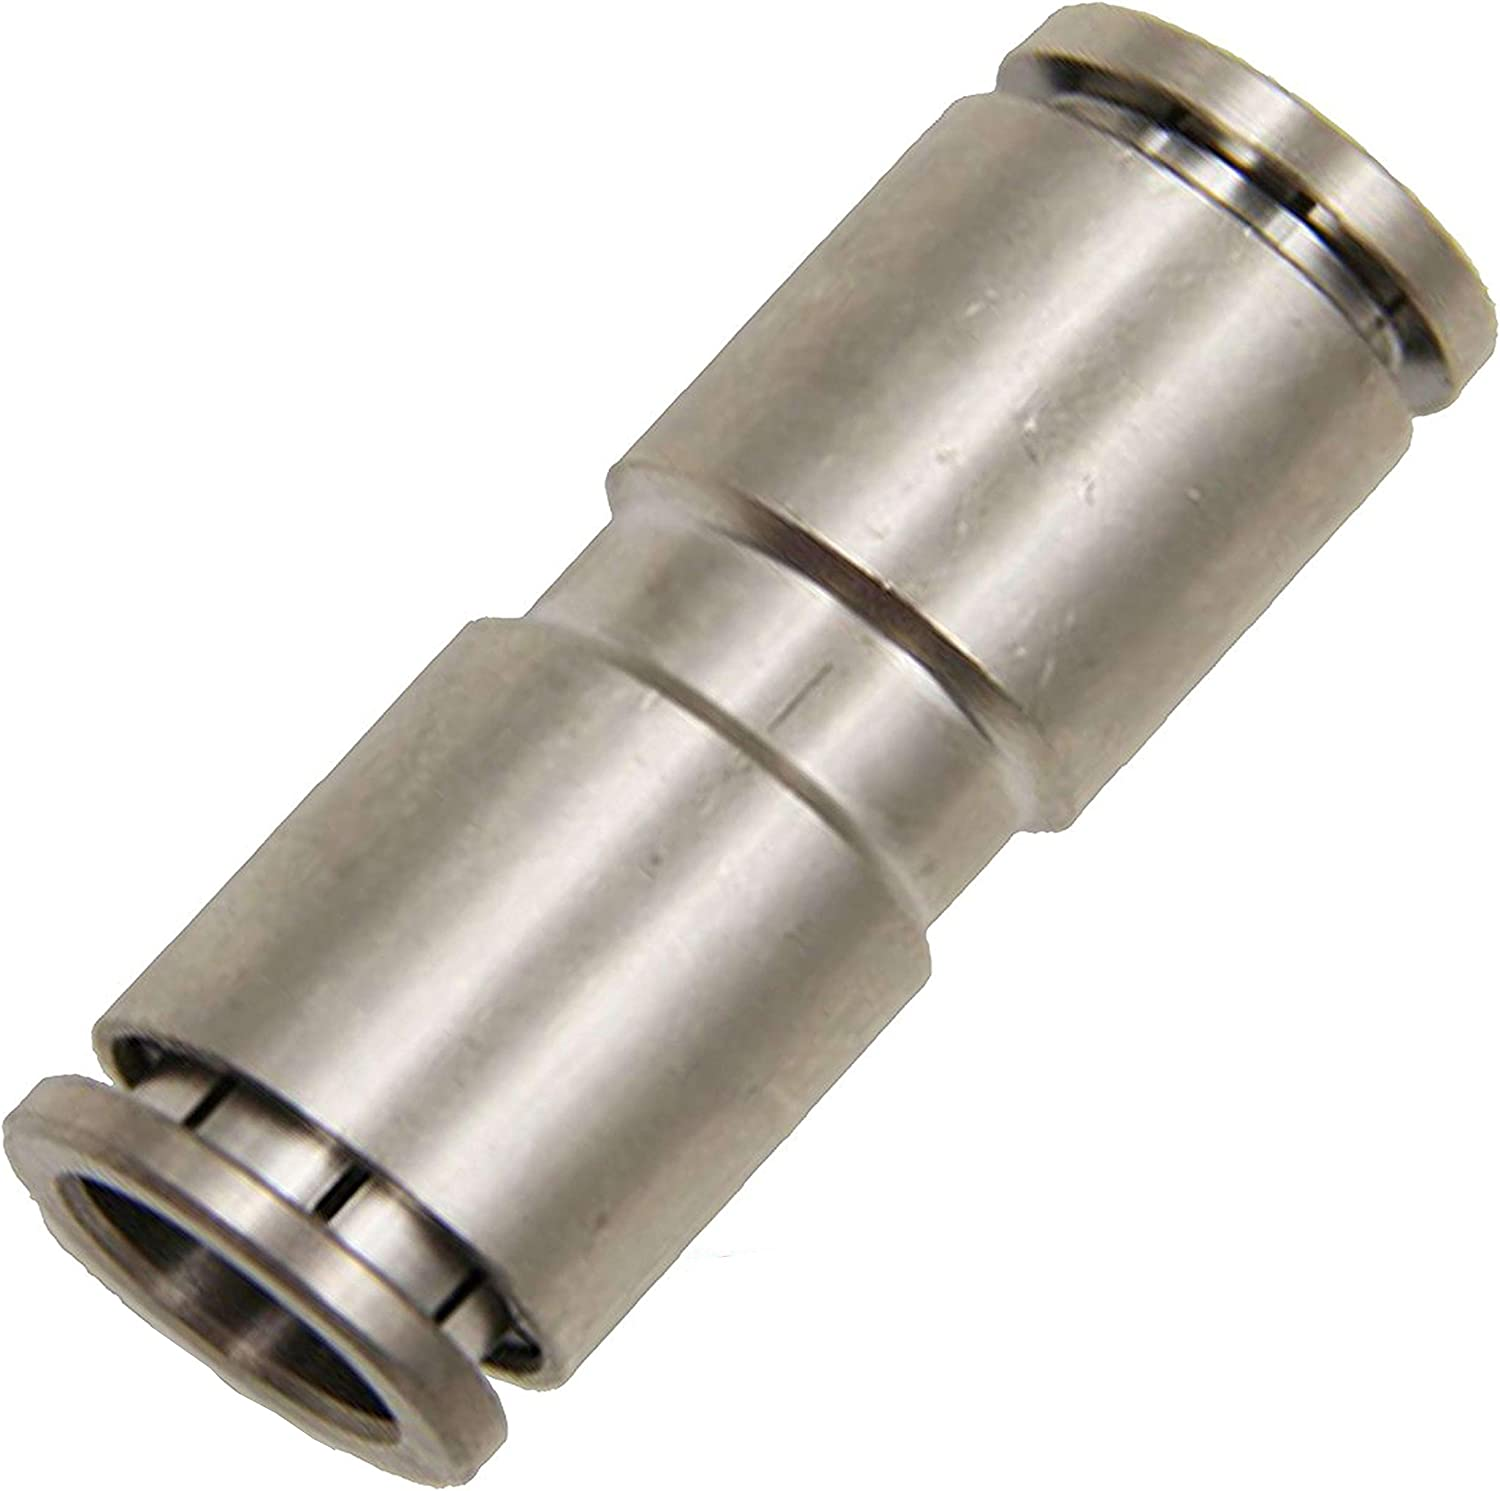 Push to Connect Fittings Tube Connect 1//4 inch Straight Tube Fittings Push Lock 10 Packs